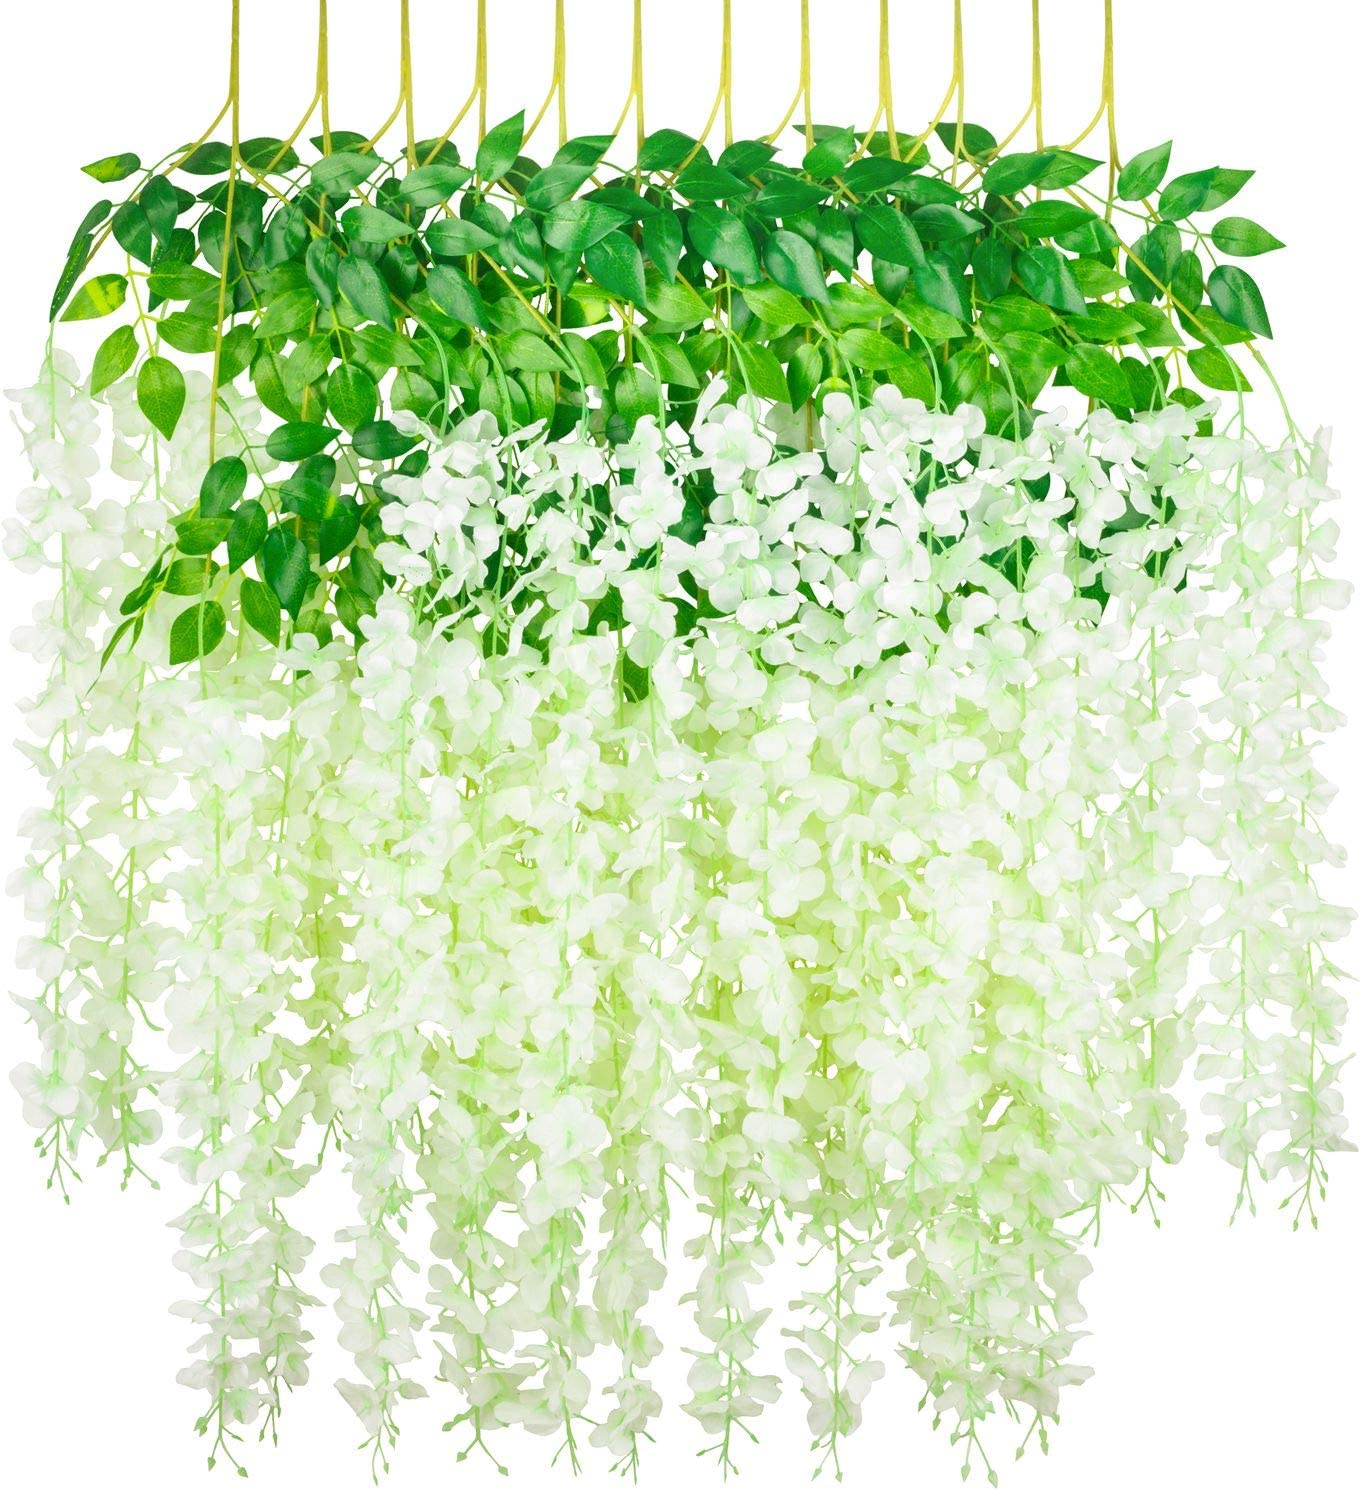 Myselfly 12 Pieces Artificial Silk Wisteria Flower Hanging Silk Vine Rattan Fake Bush Flower for Home Party Wedding Garden Outdoor Greenery Decoration 3.67 Feet (Milk White)